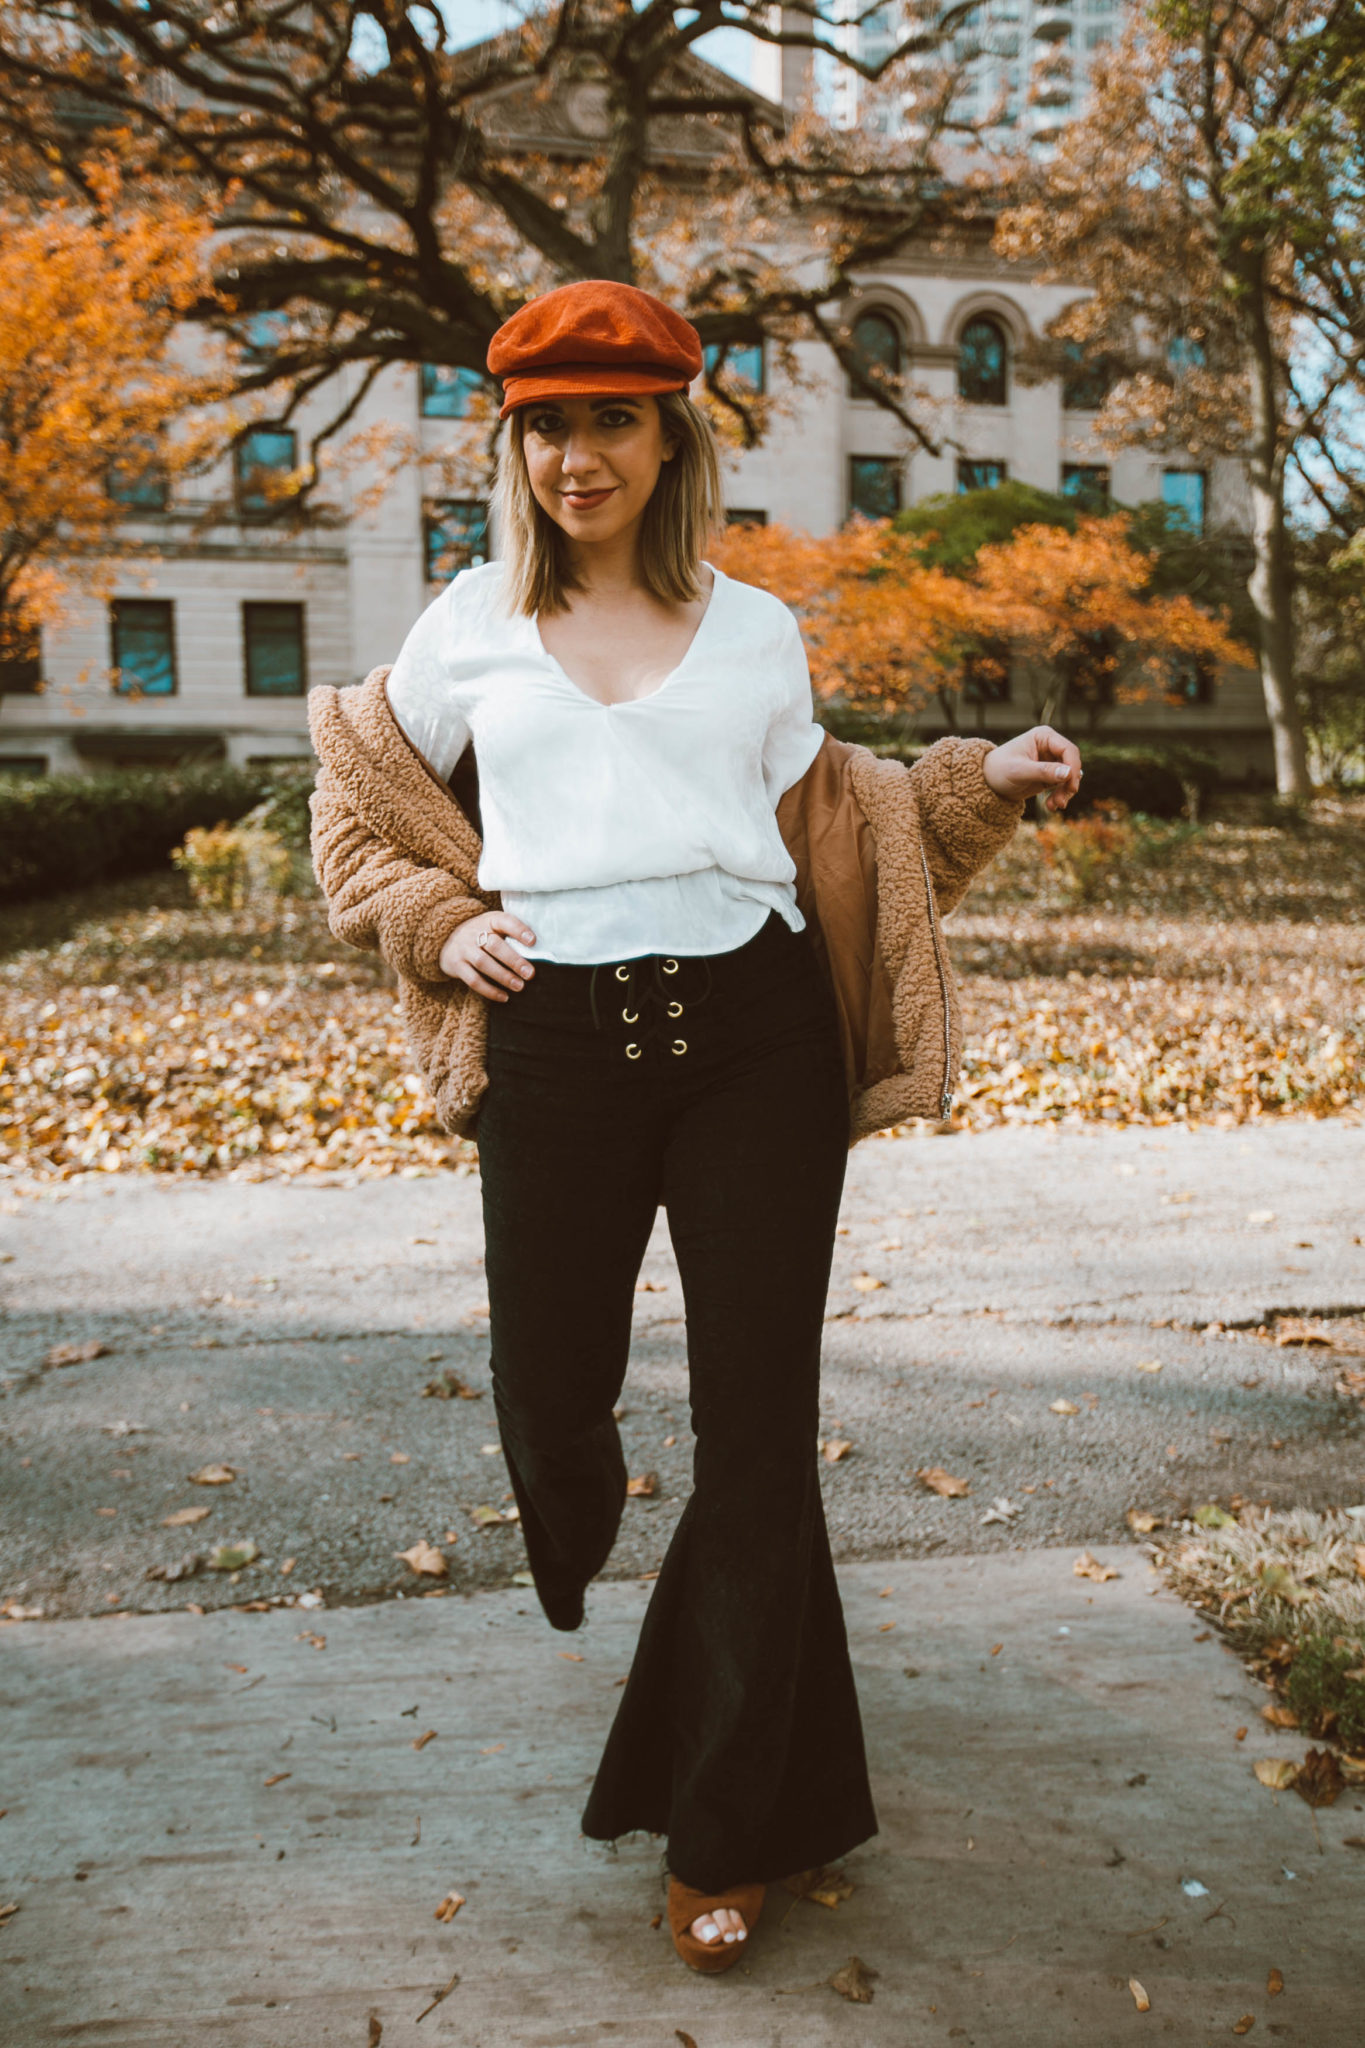 e8e8da4e4a Black Bell Bottoms and 70s style featured by top Chicago fashion blog